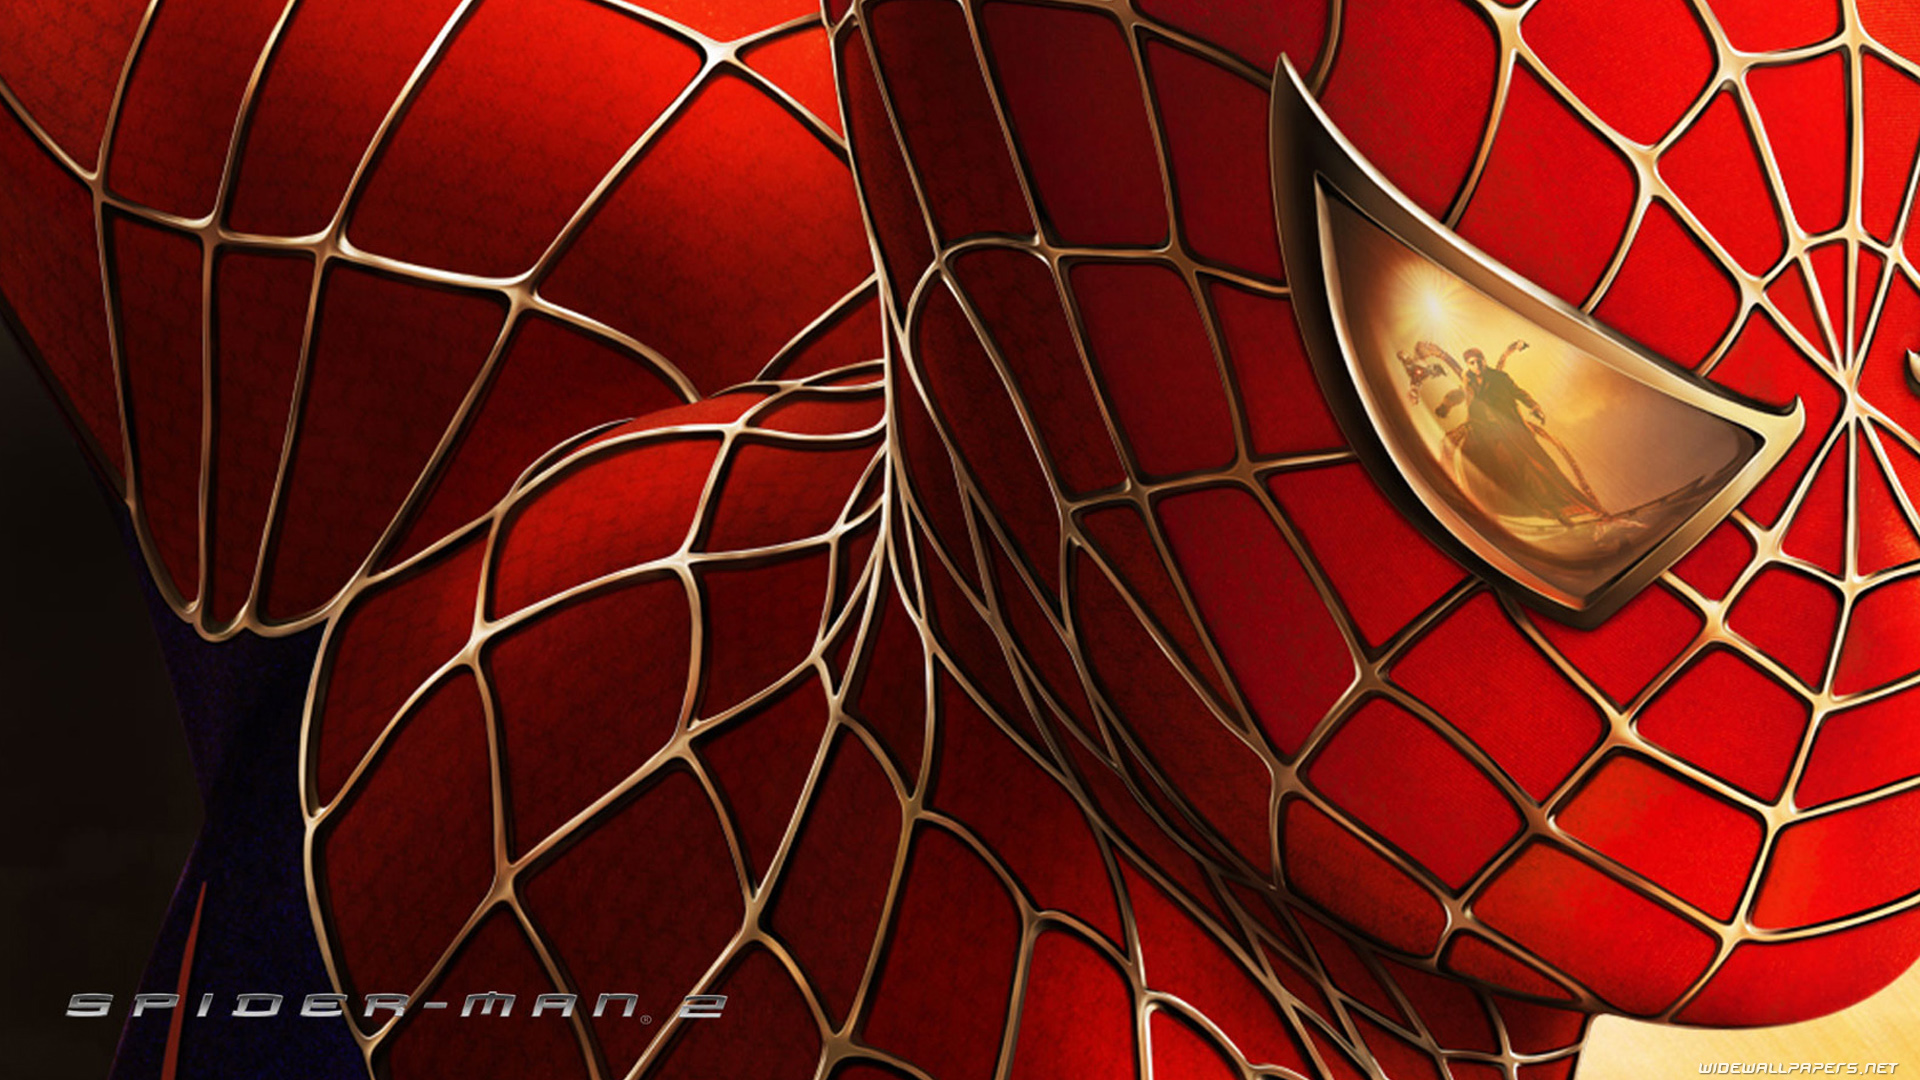 Spider man 2 movie desktop wallpapers hd and wide wallpapers spider man 2 movie wide wallpapers voltagebd Gallery